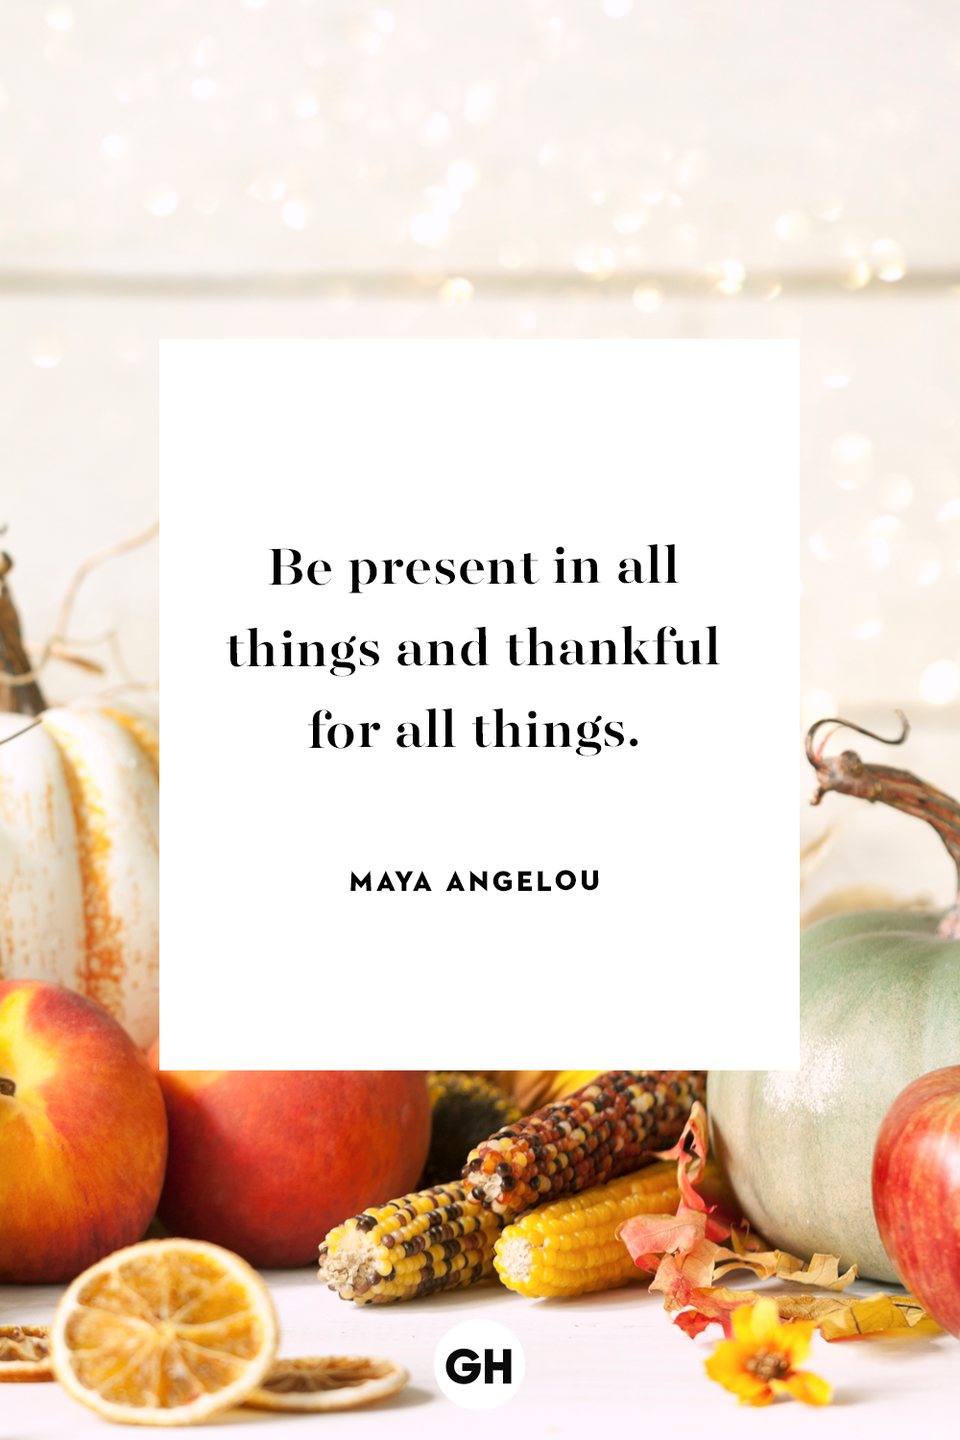 <p>Be present in all things and thankful for all things.</p>